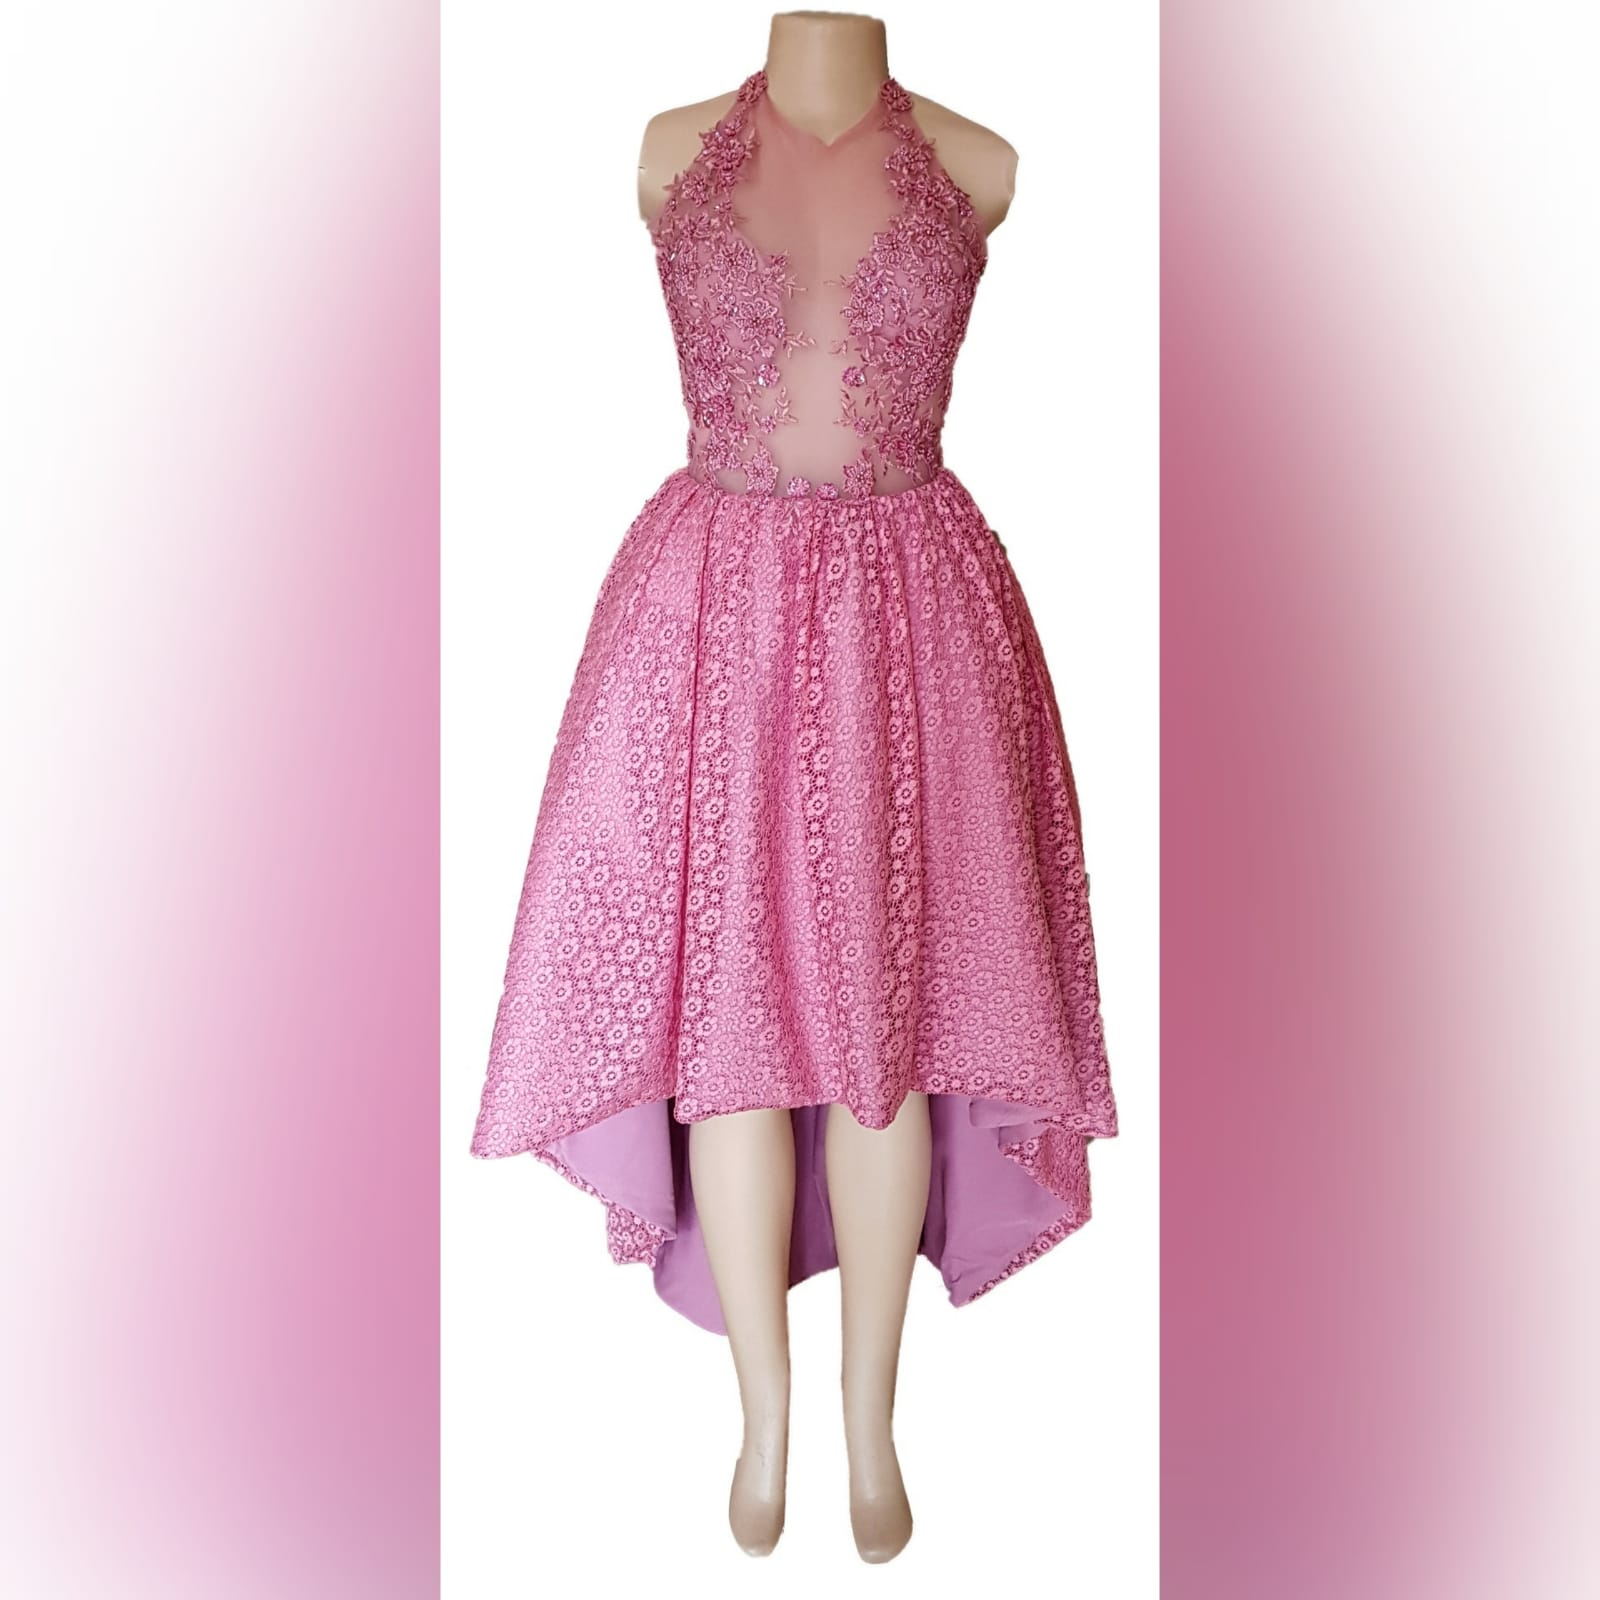 High low dusty pink prom dress 4 high low dusty pink prom dress with an illusion bodice detailed with beaded lace. Bottom fully laced.